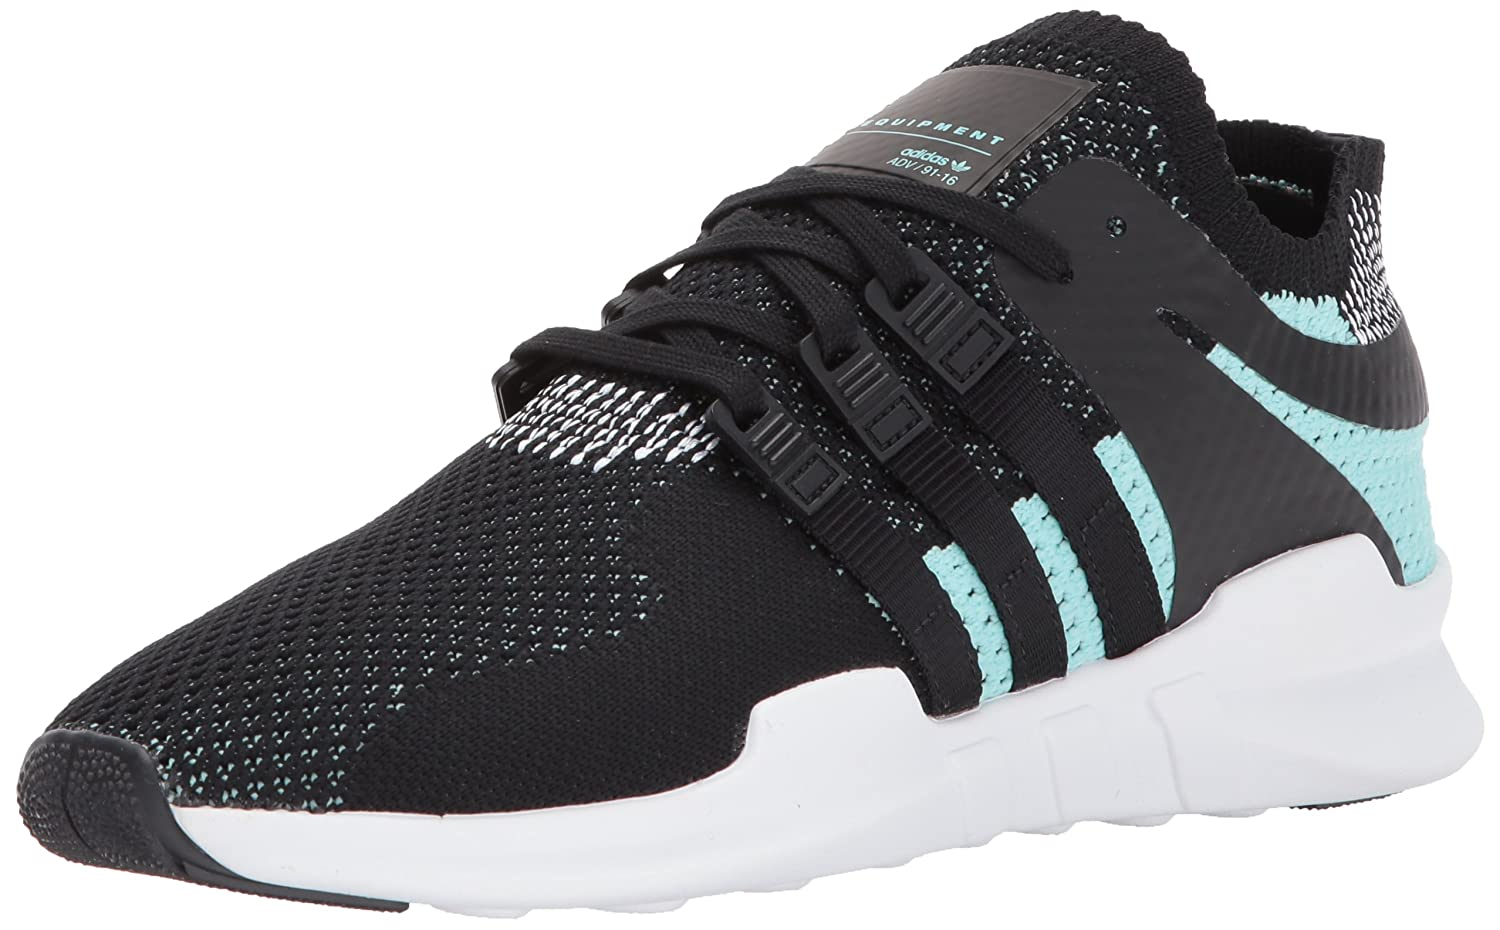 adidas Originals Women's EQT Support Adv PK W B01N1SF1SS 9 B(M) US|Black/Black/White